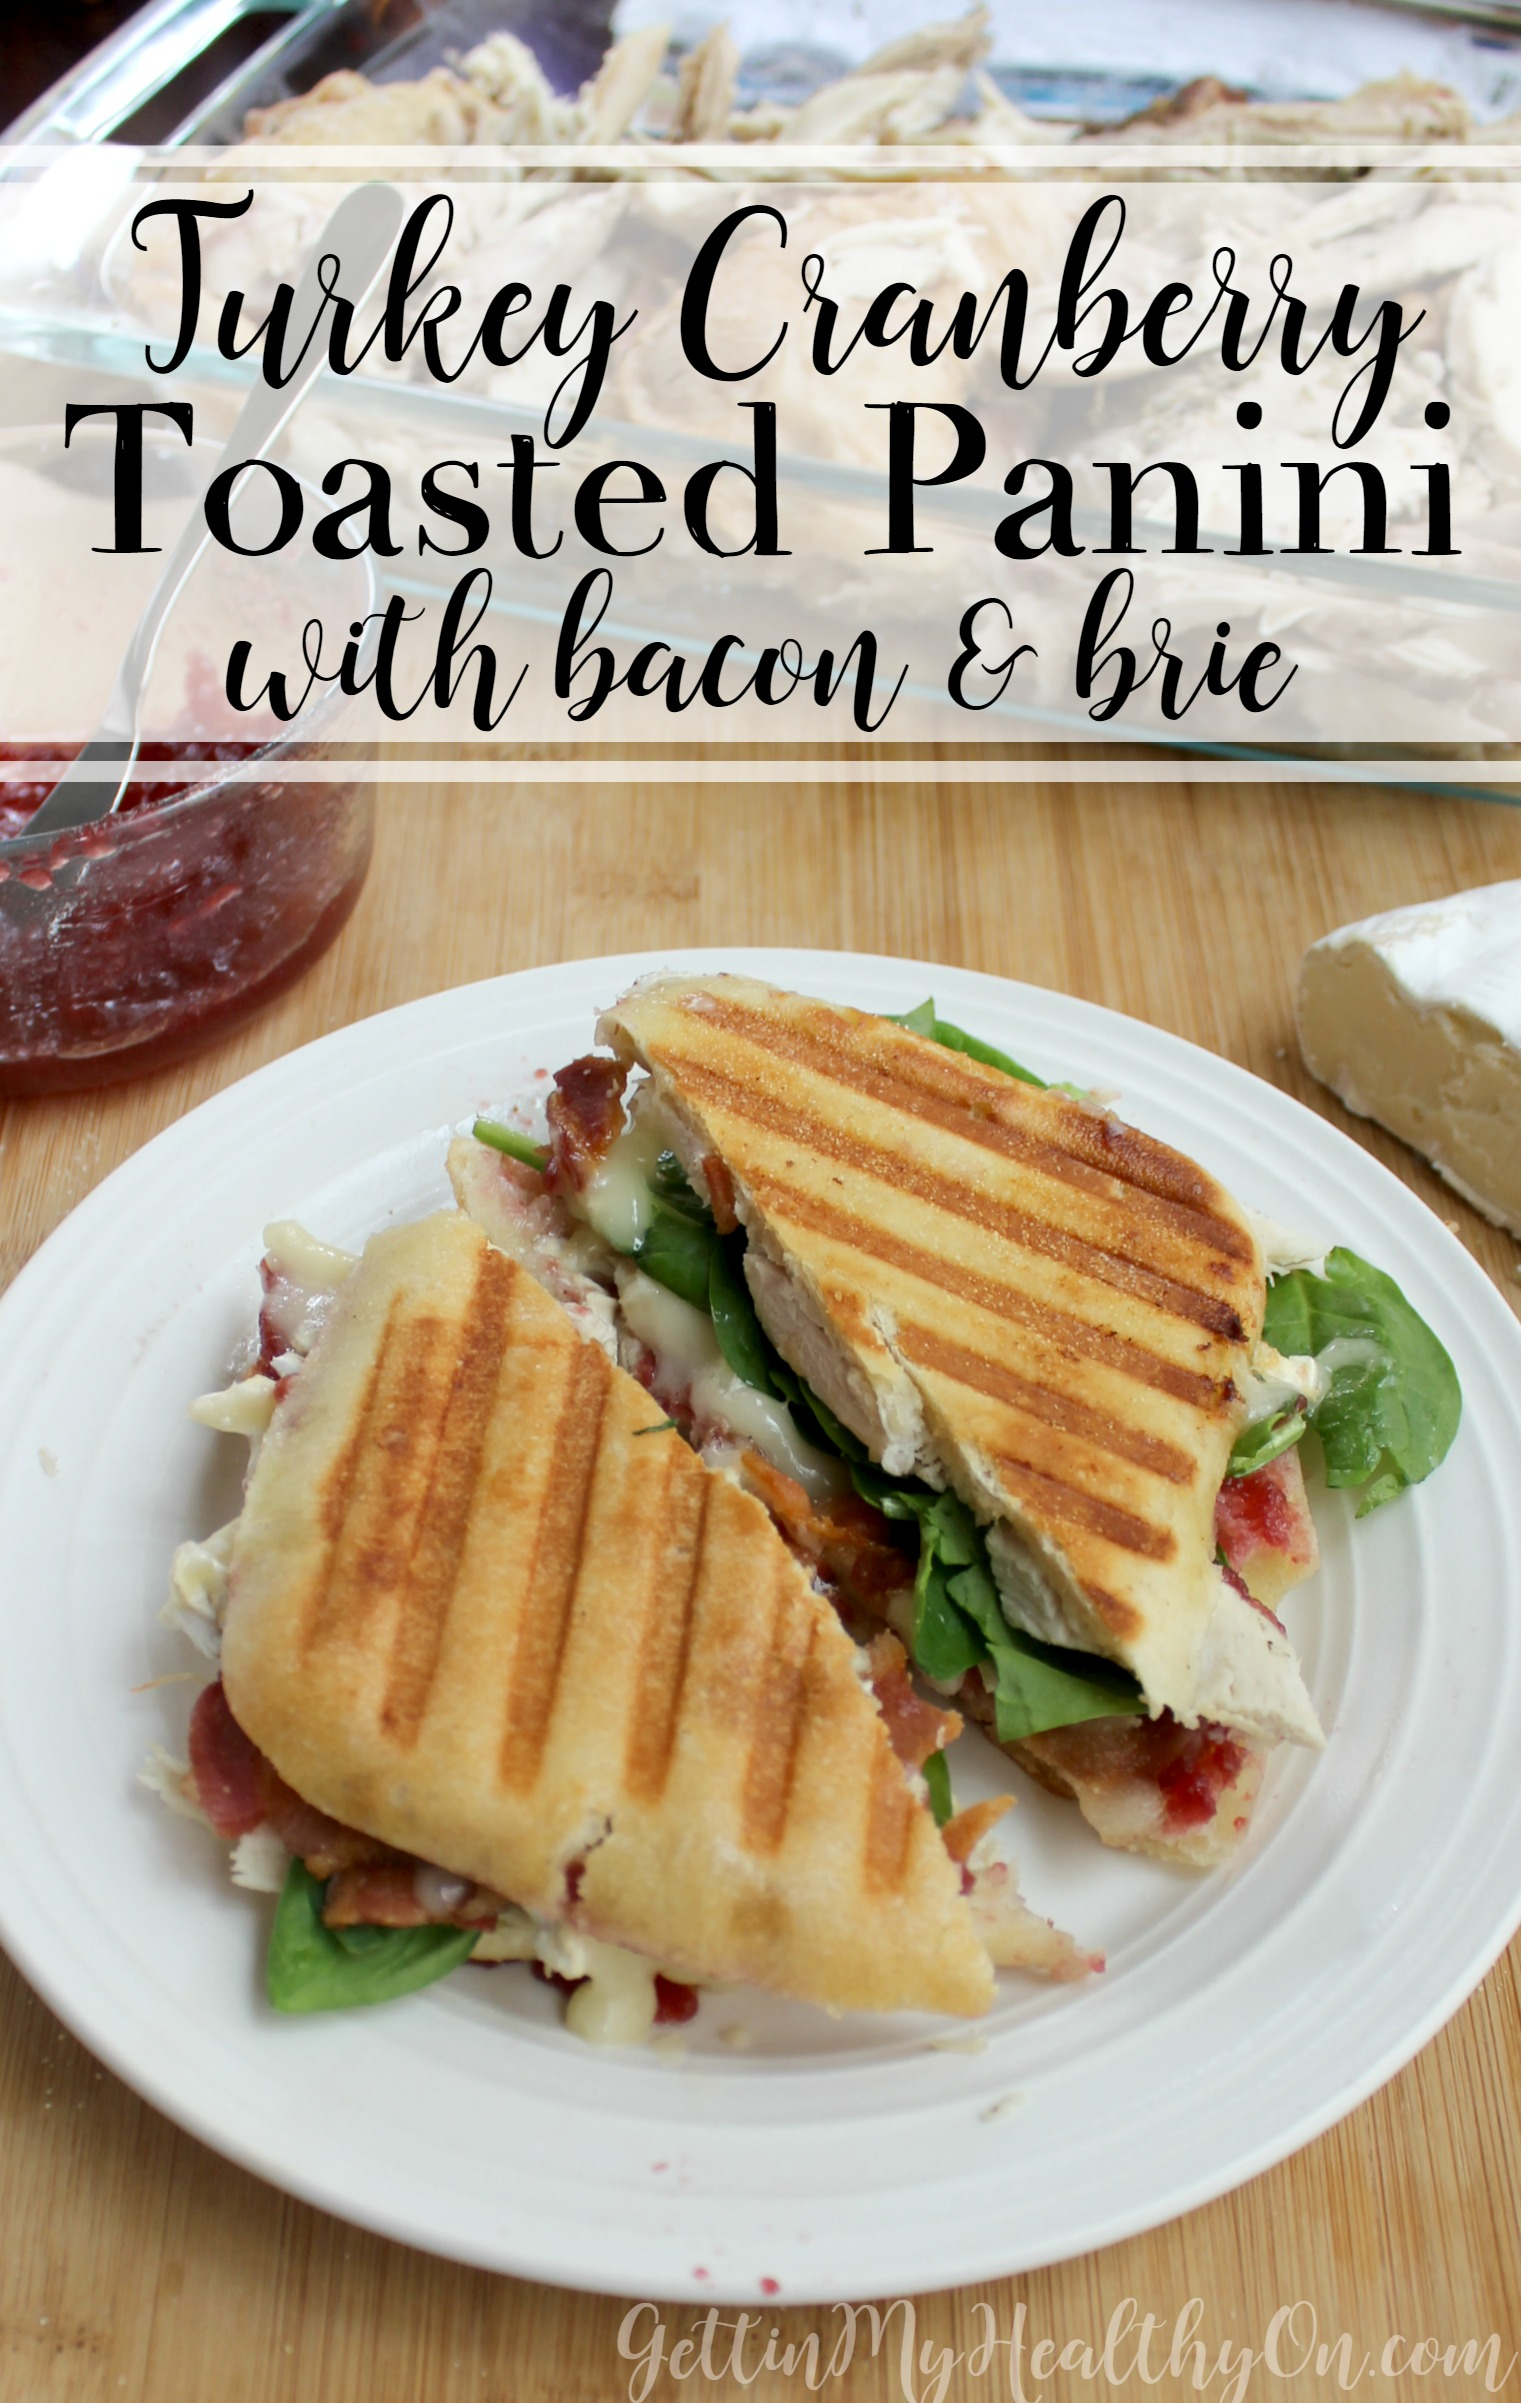 Turkey Cranberry Panini with Bacon and Brie